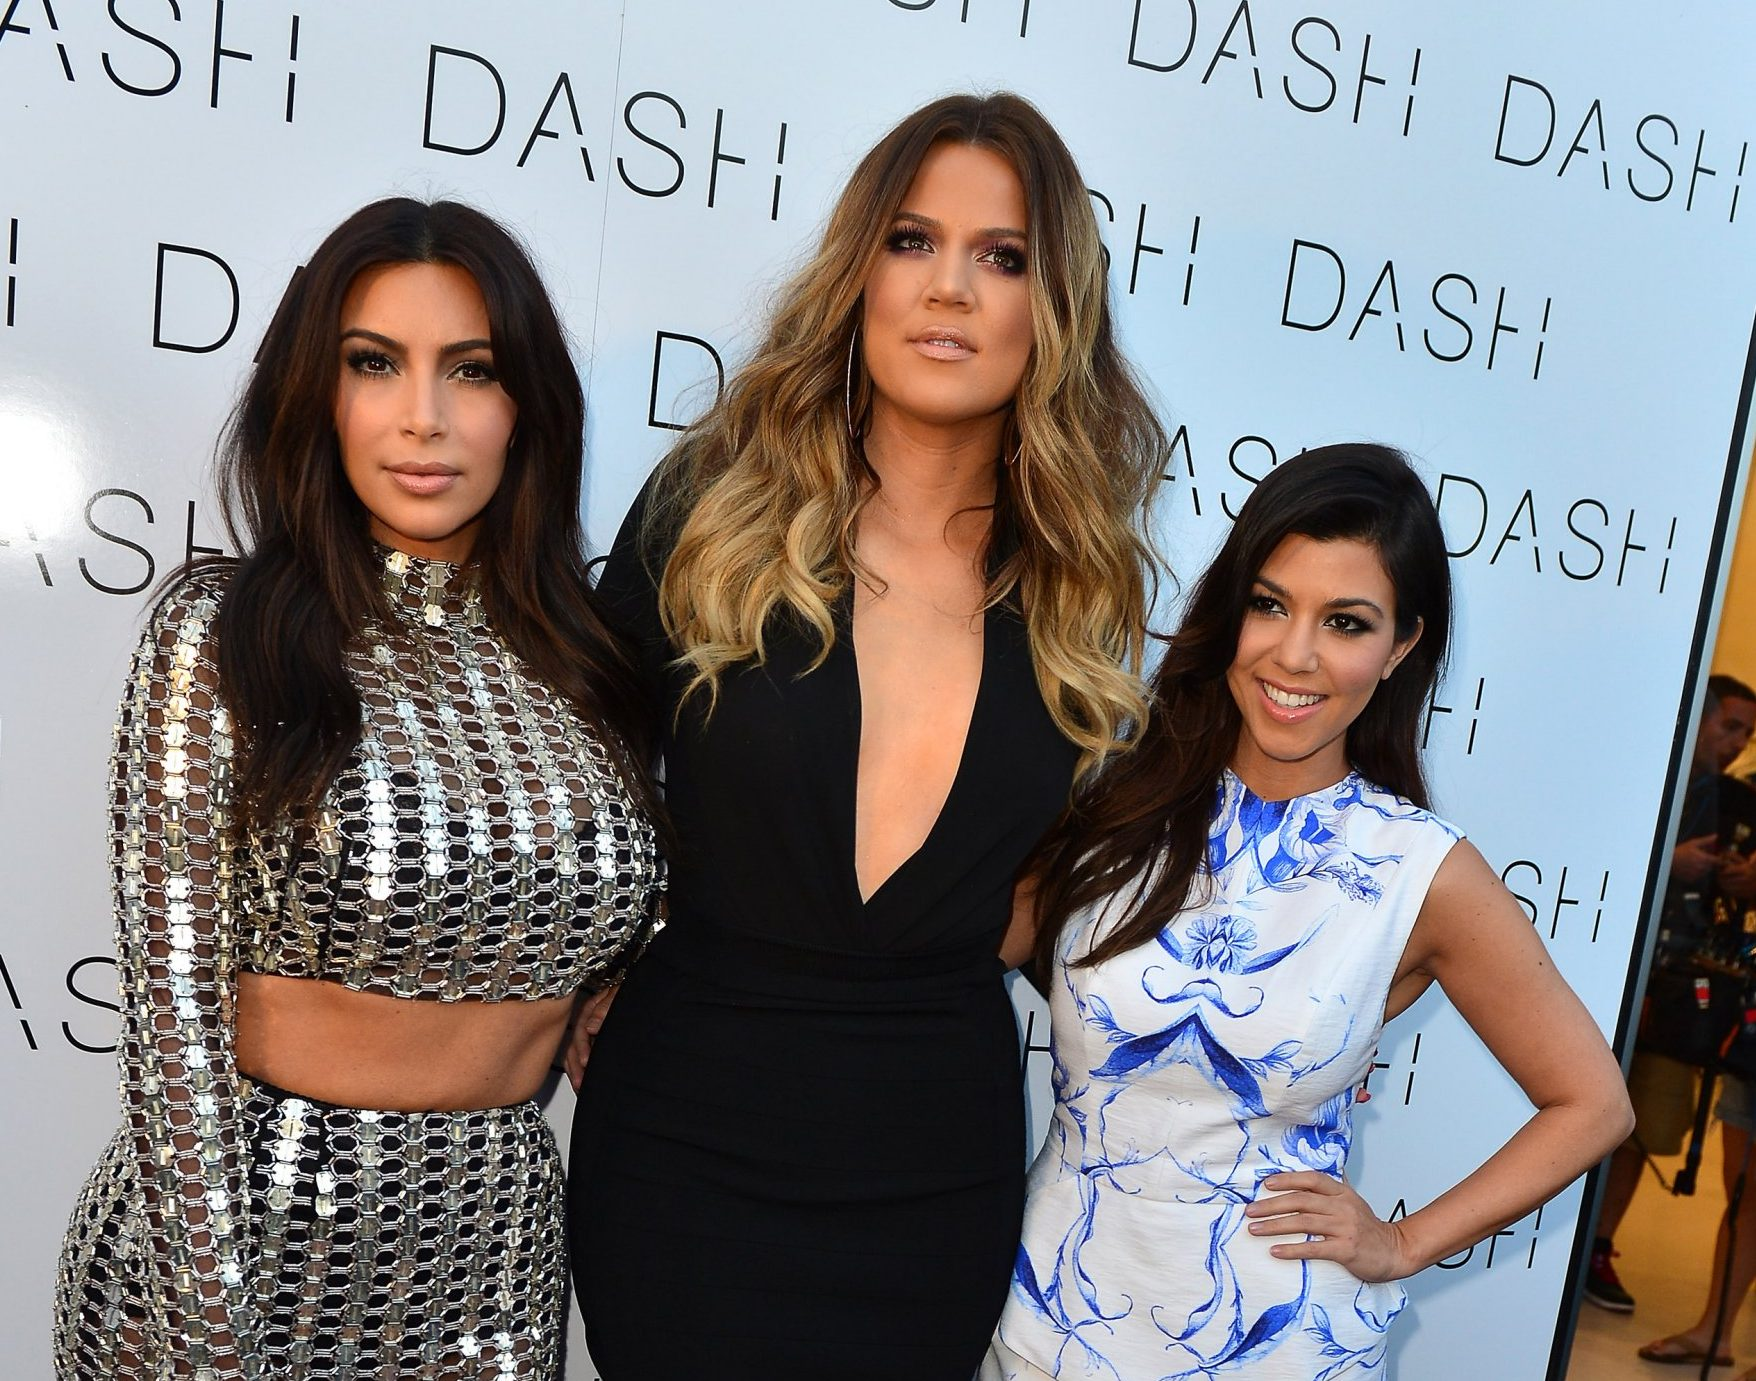 How much would the Kardashians actually earn if they weren't famous?